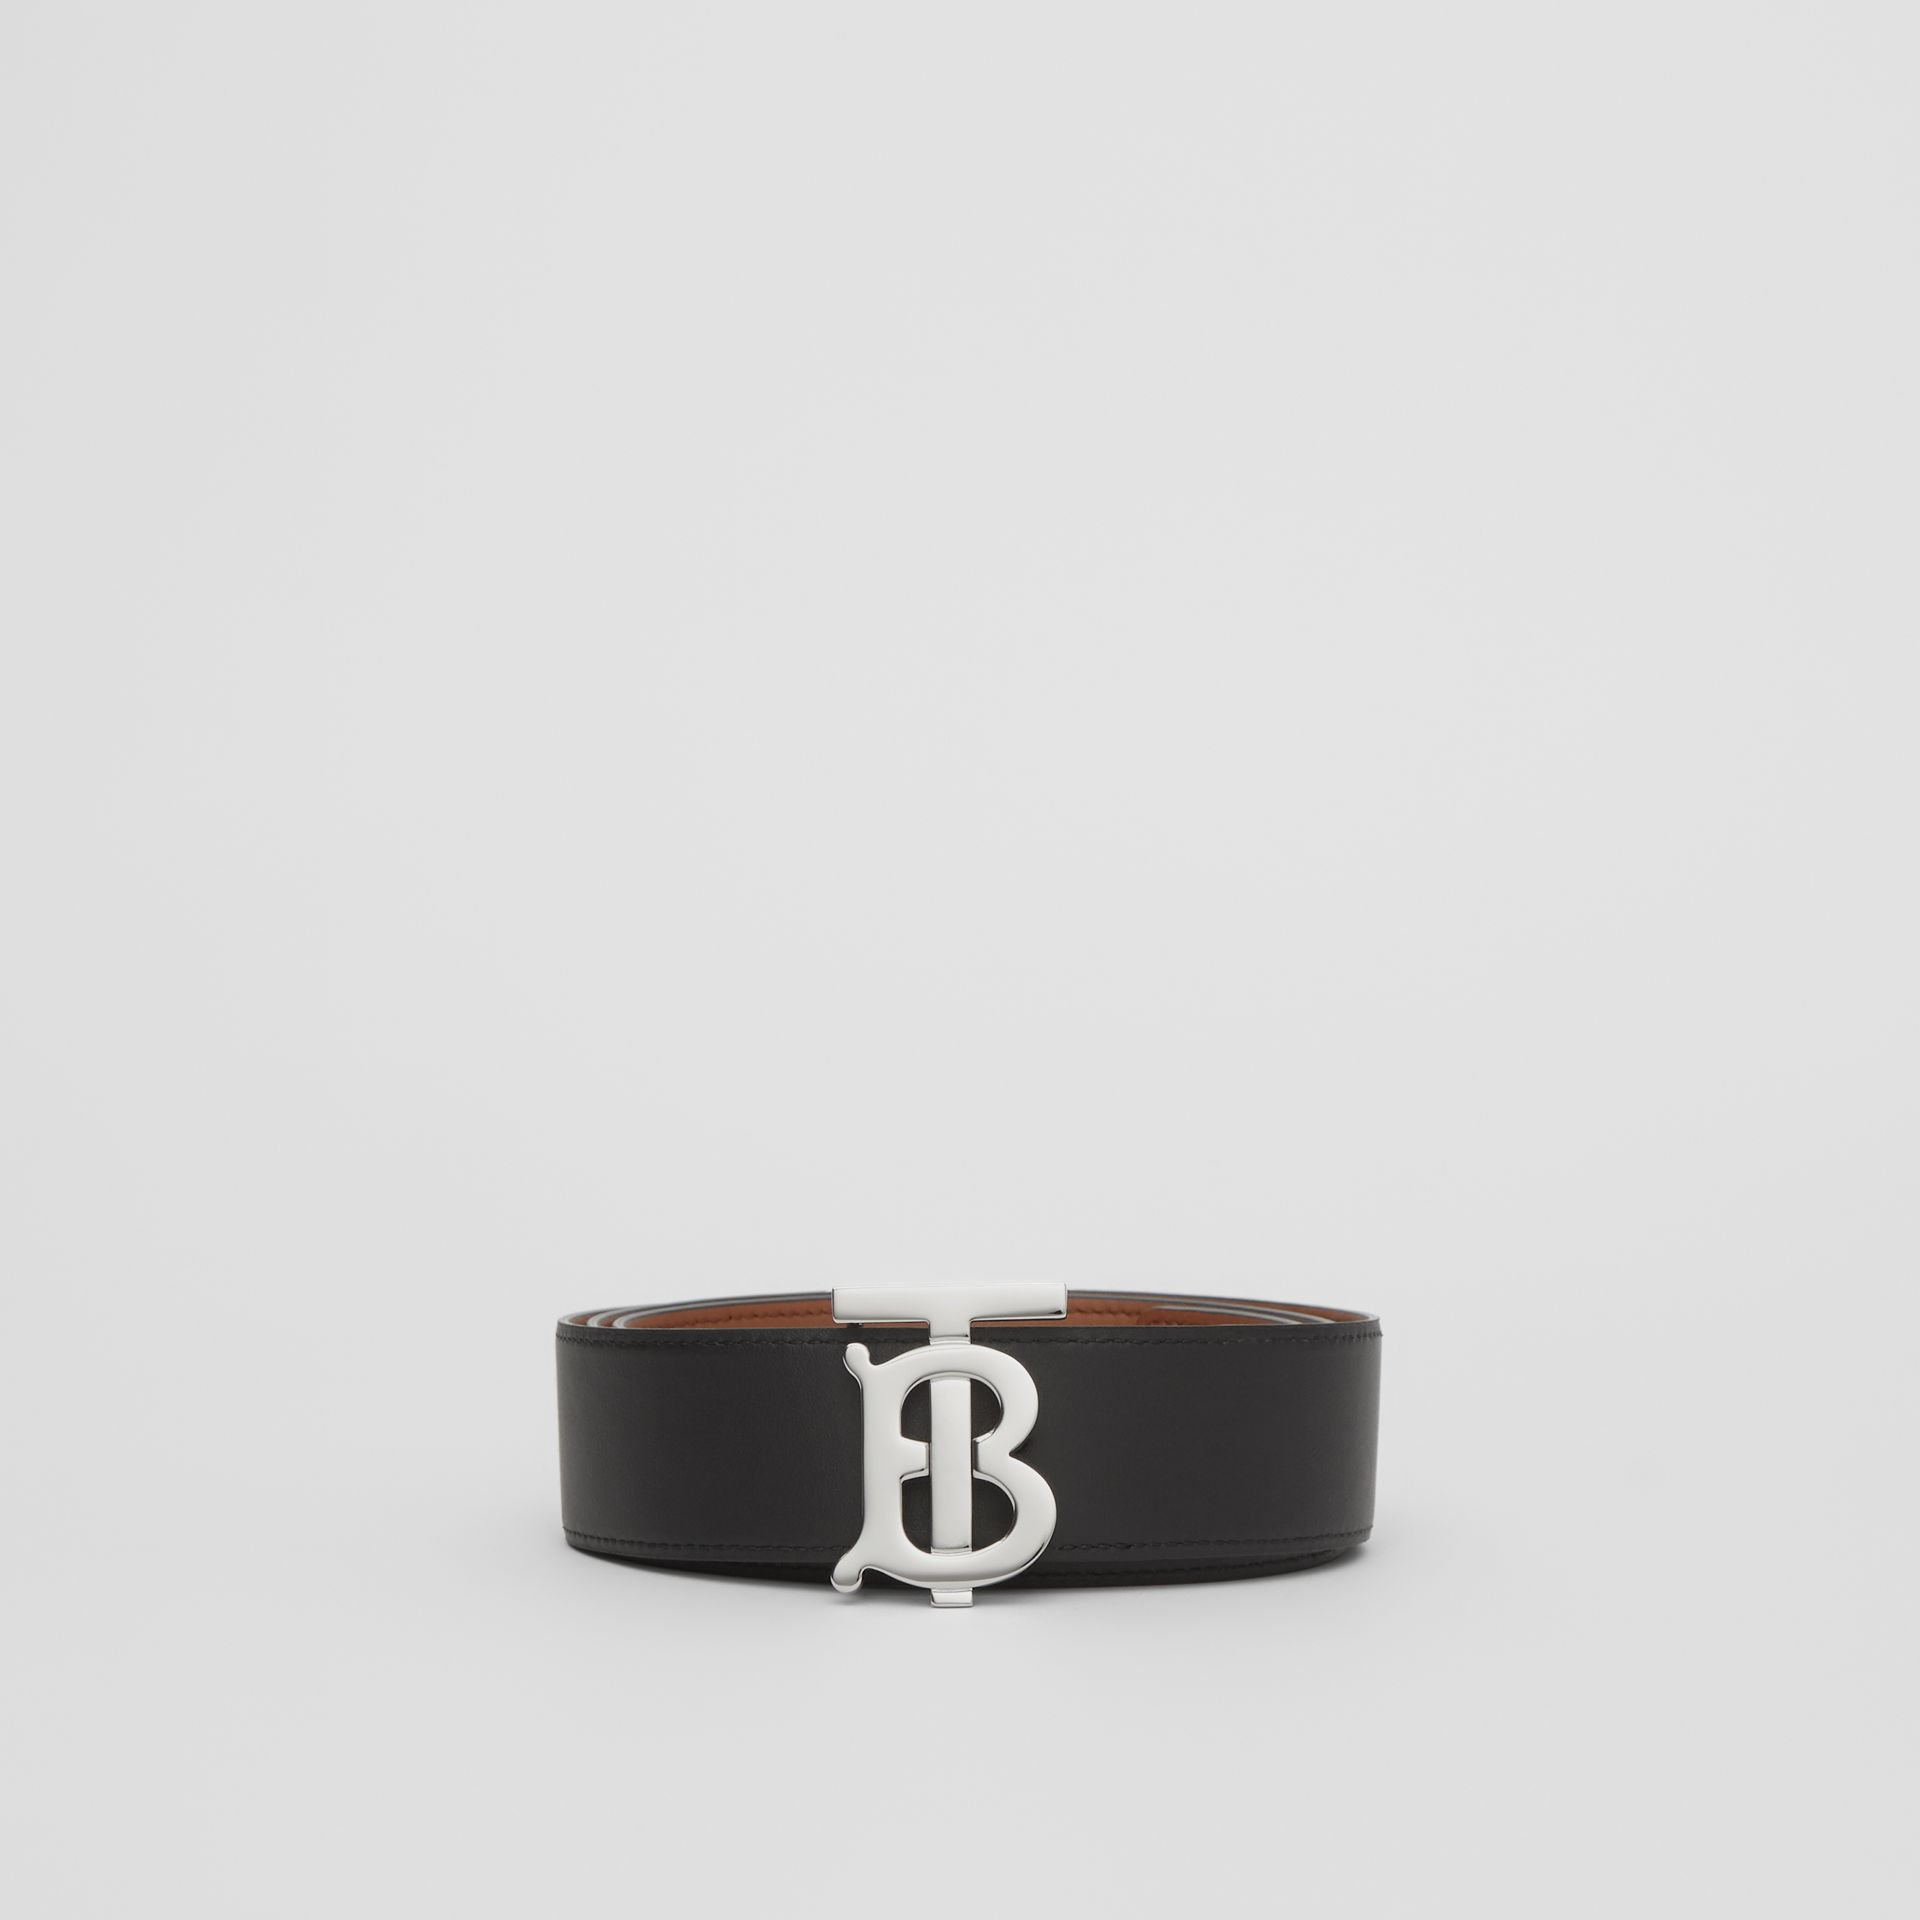 Reversible Monogram Motif Leather Belt in Malt Brown/black - Women | Burberry - gallery image 7